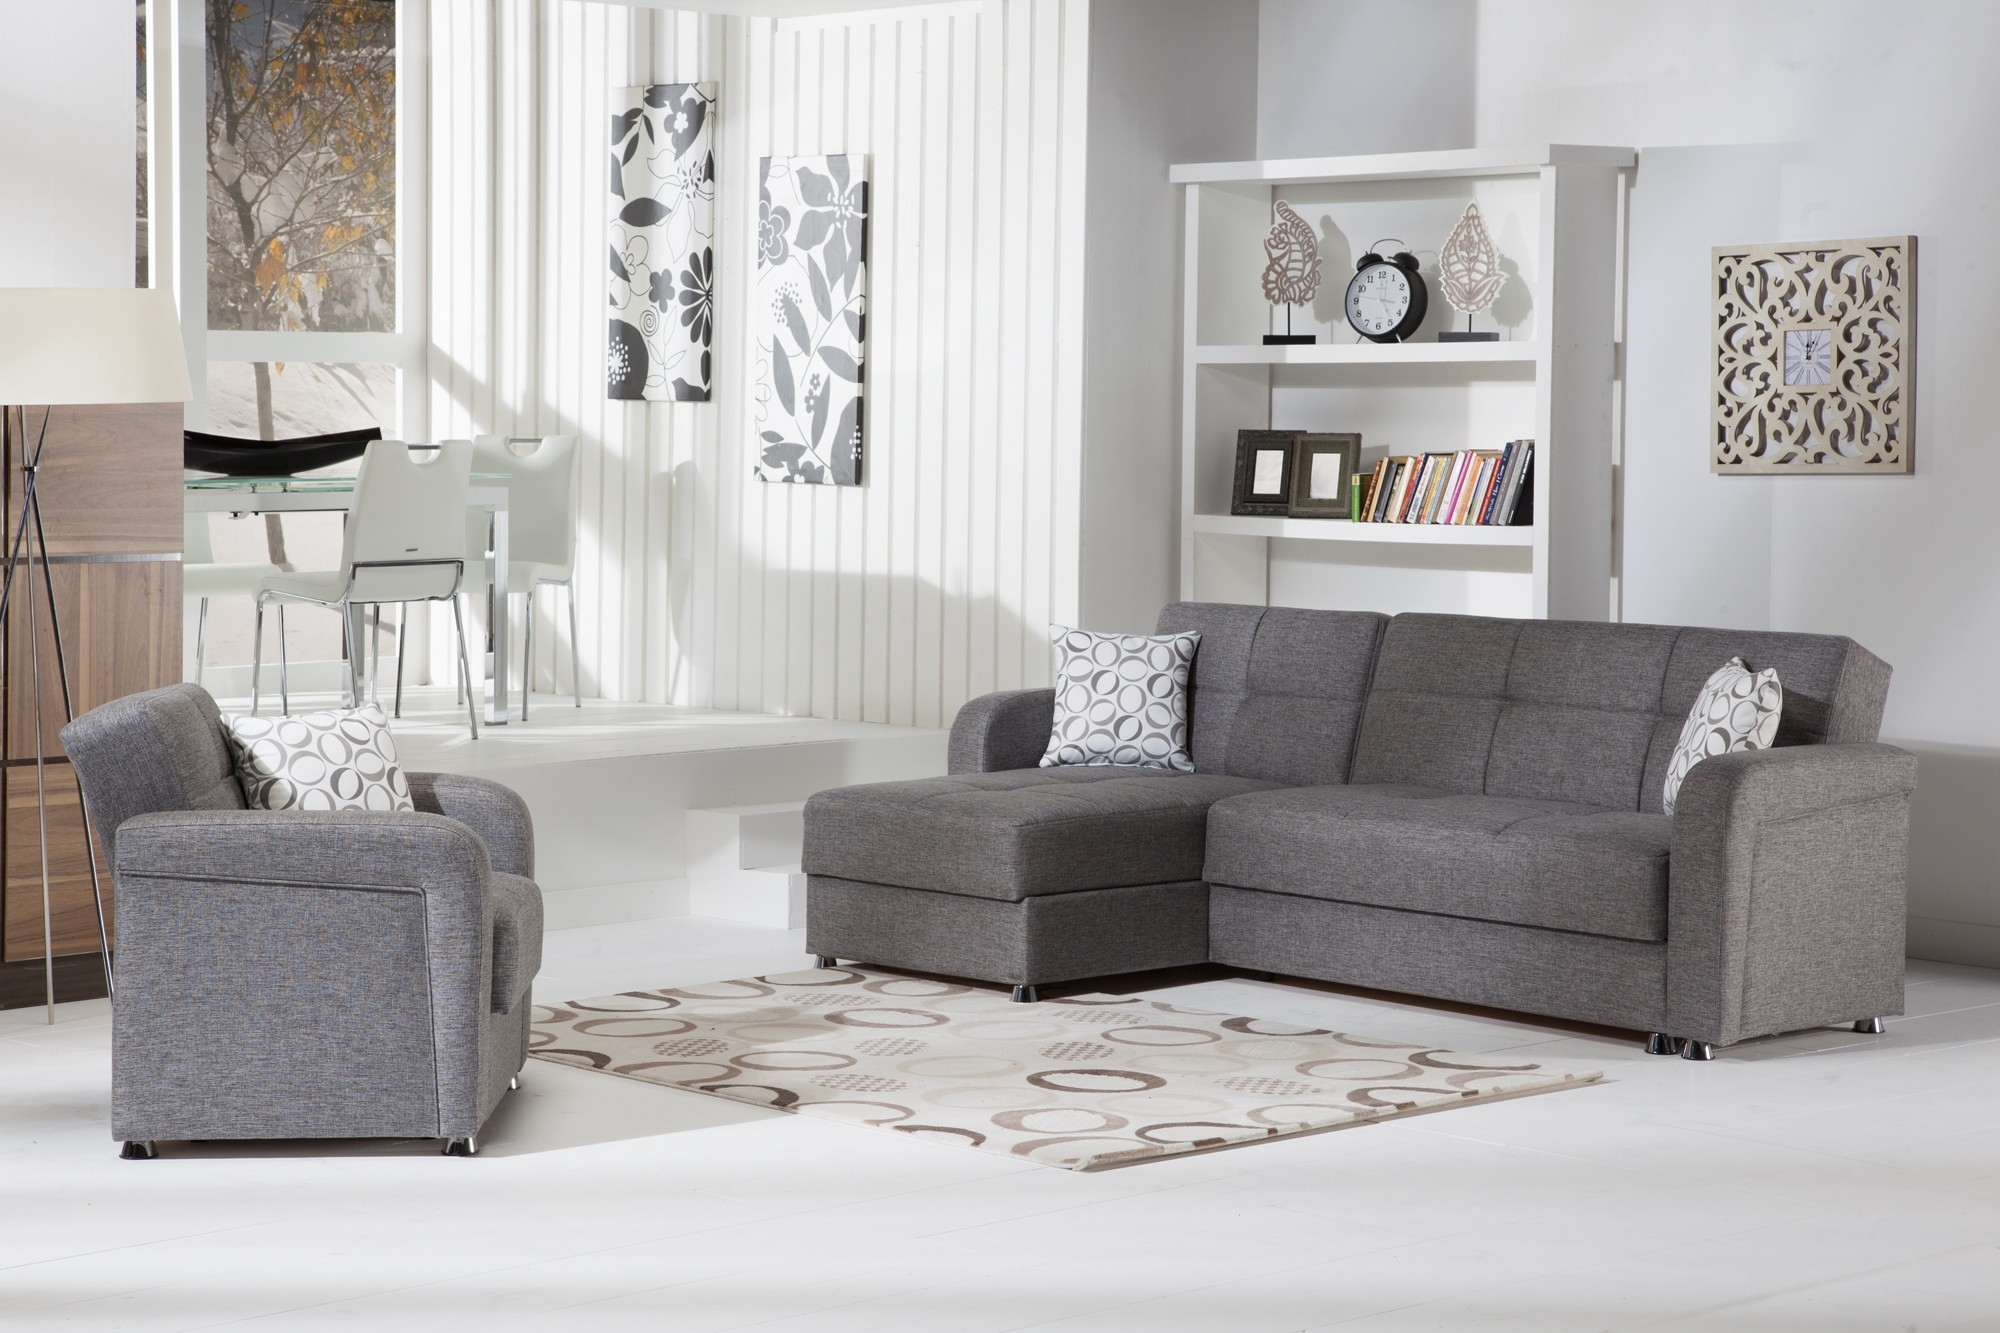 Vision Convertible Sectional Sofa In Diego Grey Istikbal With Regard To Convertible Sectional Sofas (Image 15 of 15)